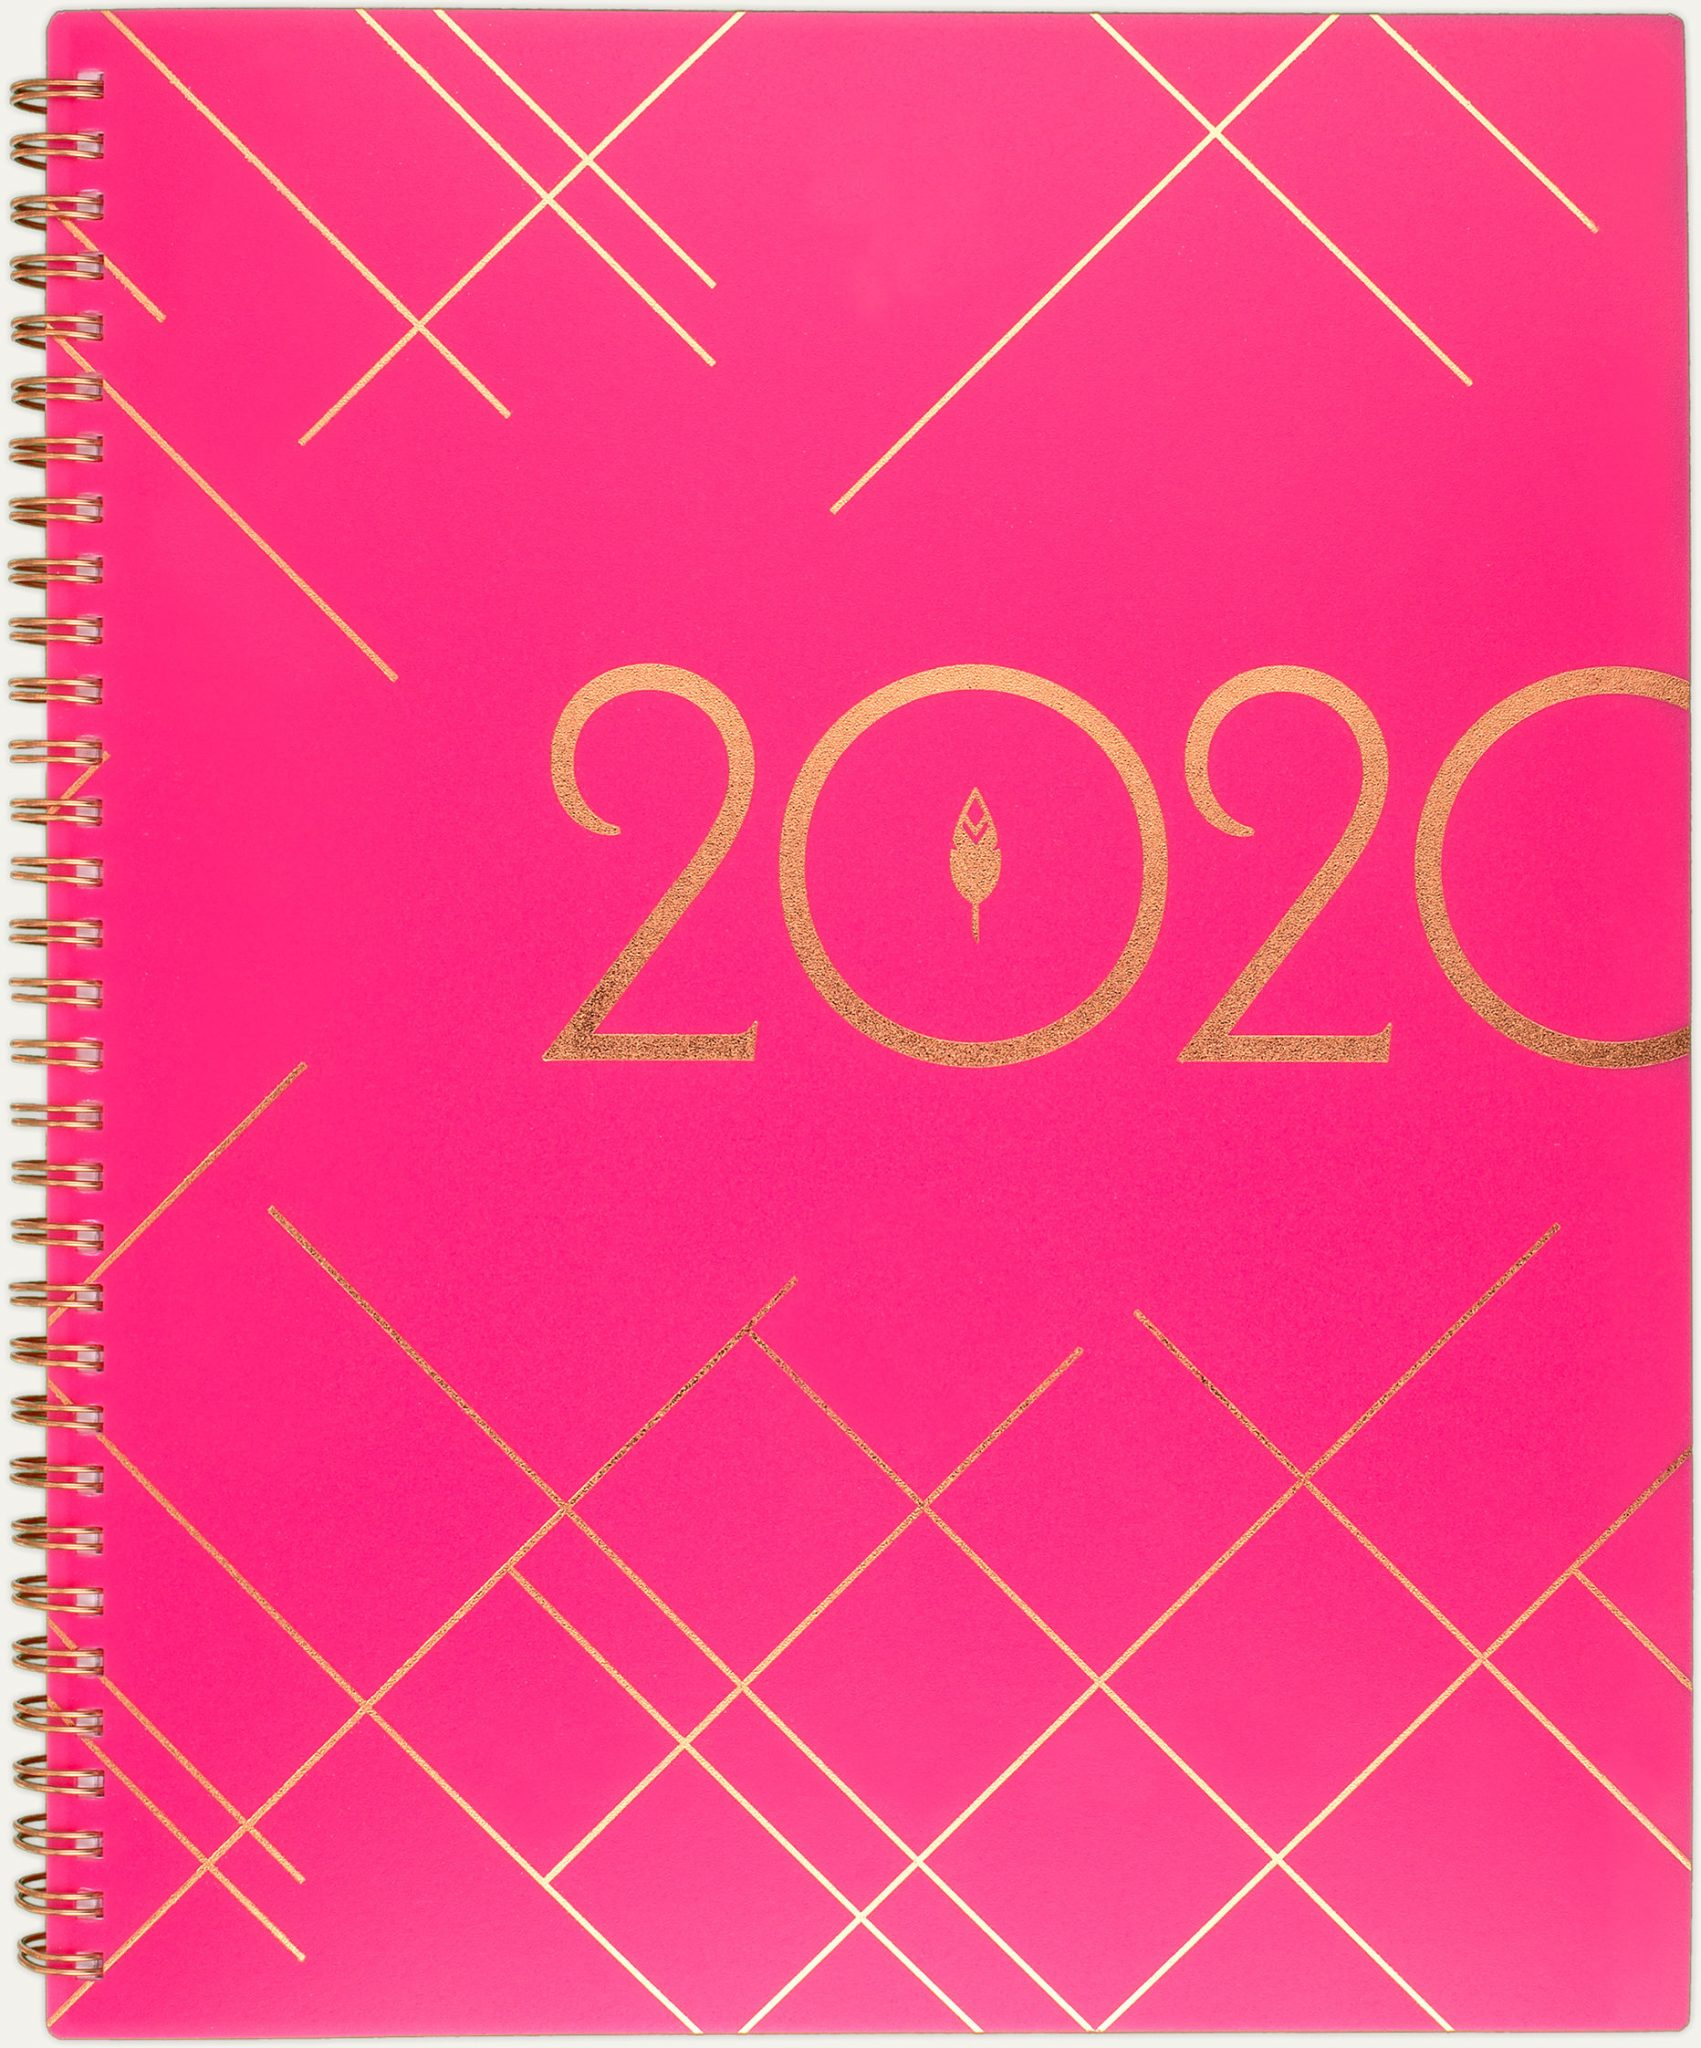 at-a-glance inkWELL 2020 new year planner